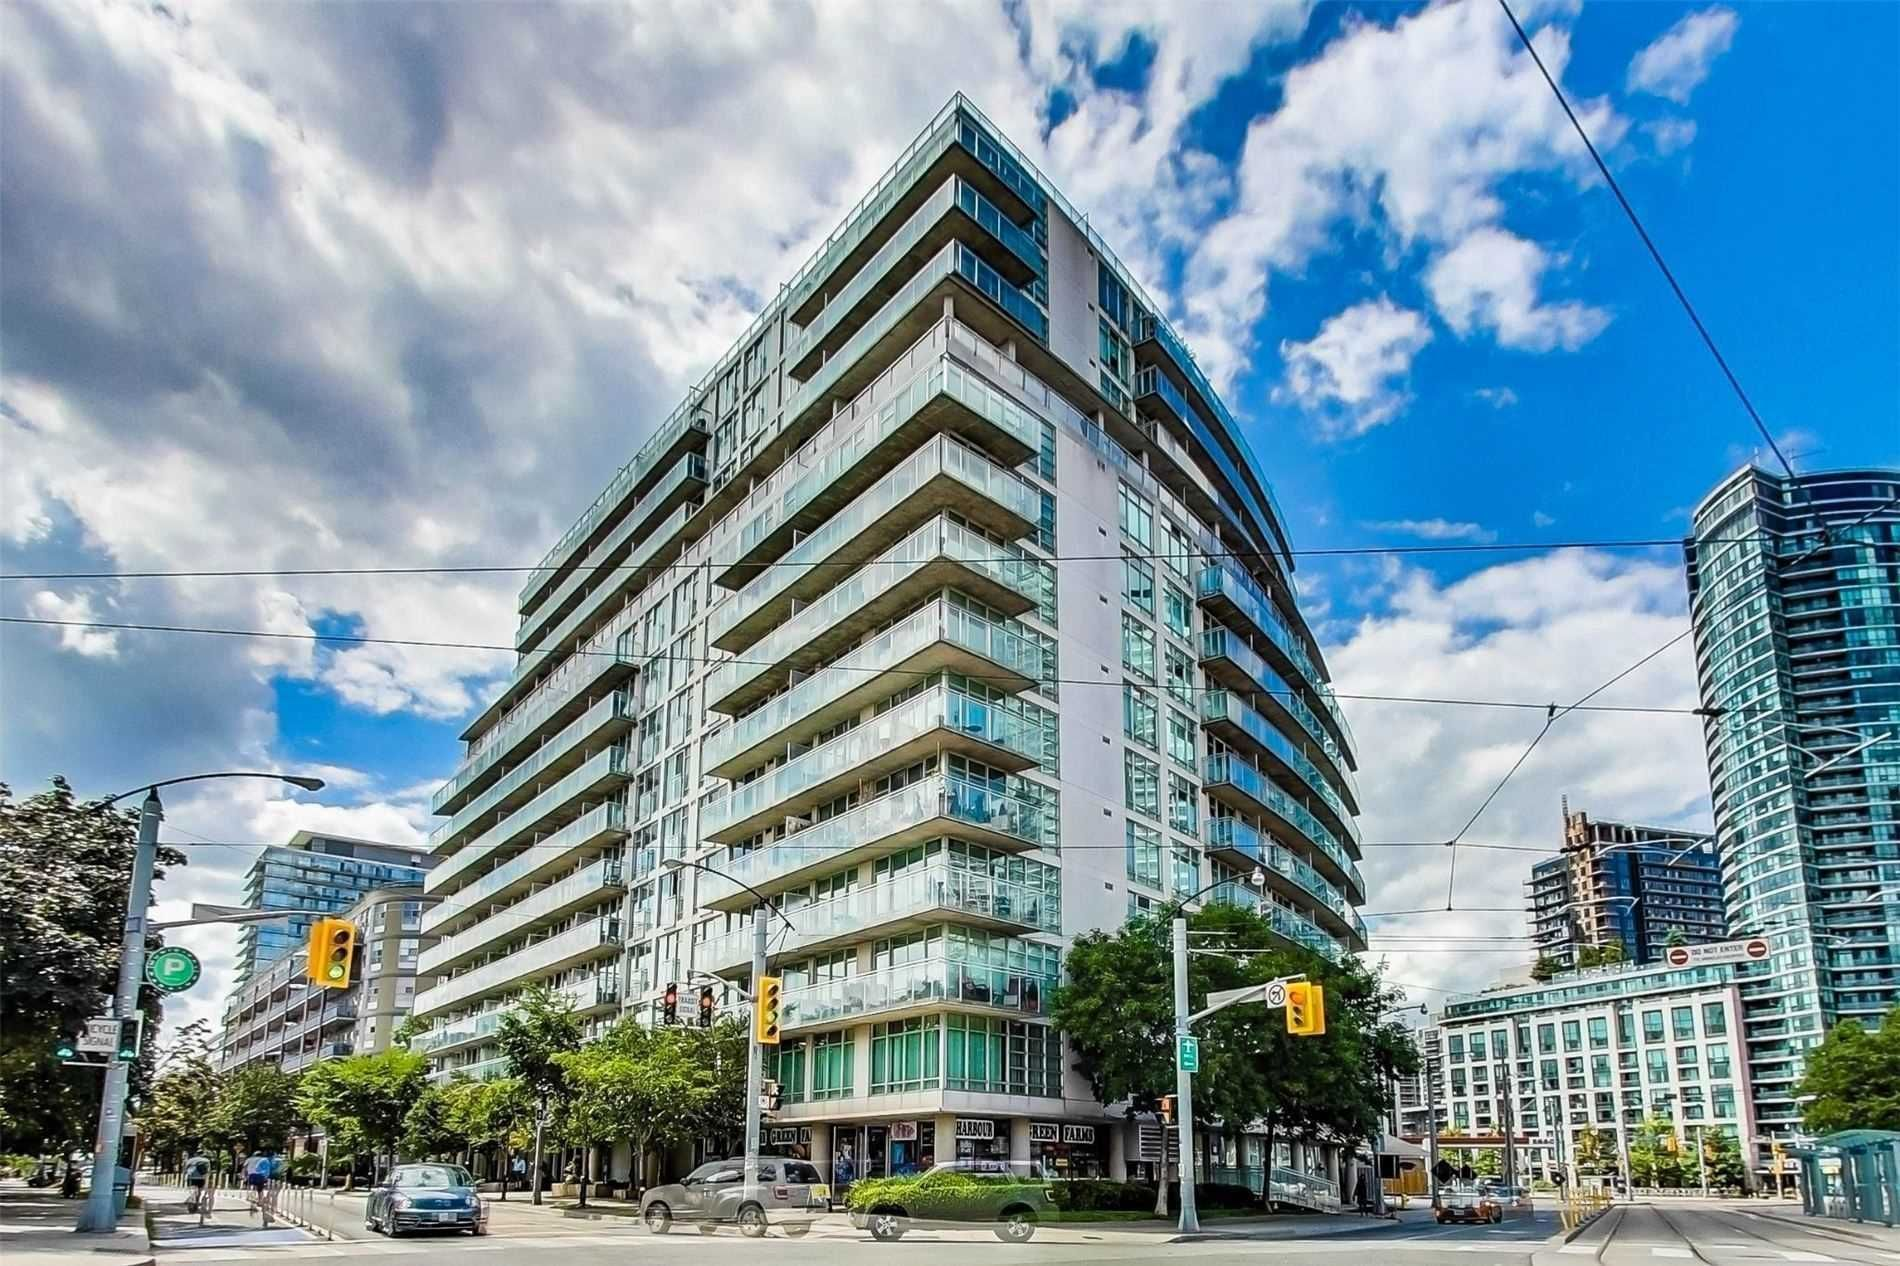 650 Queens Quay Way, unit 1521 for rent in Toronto - image #1